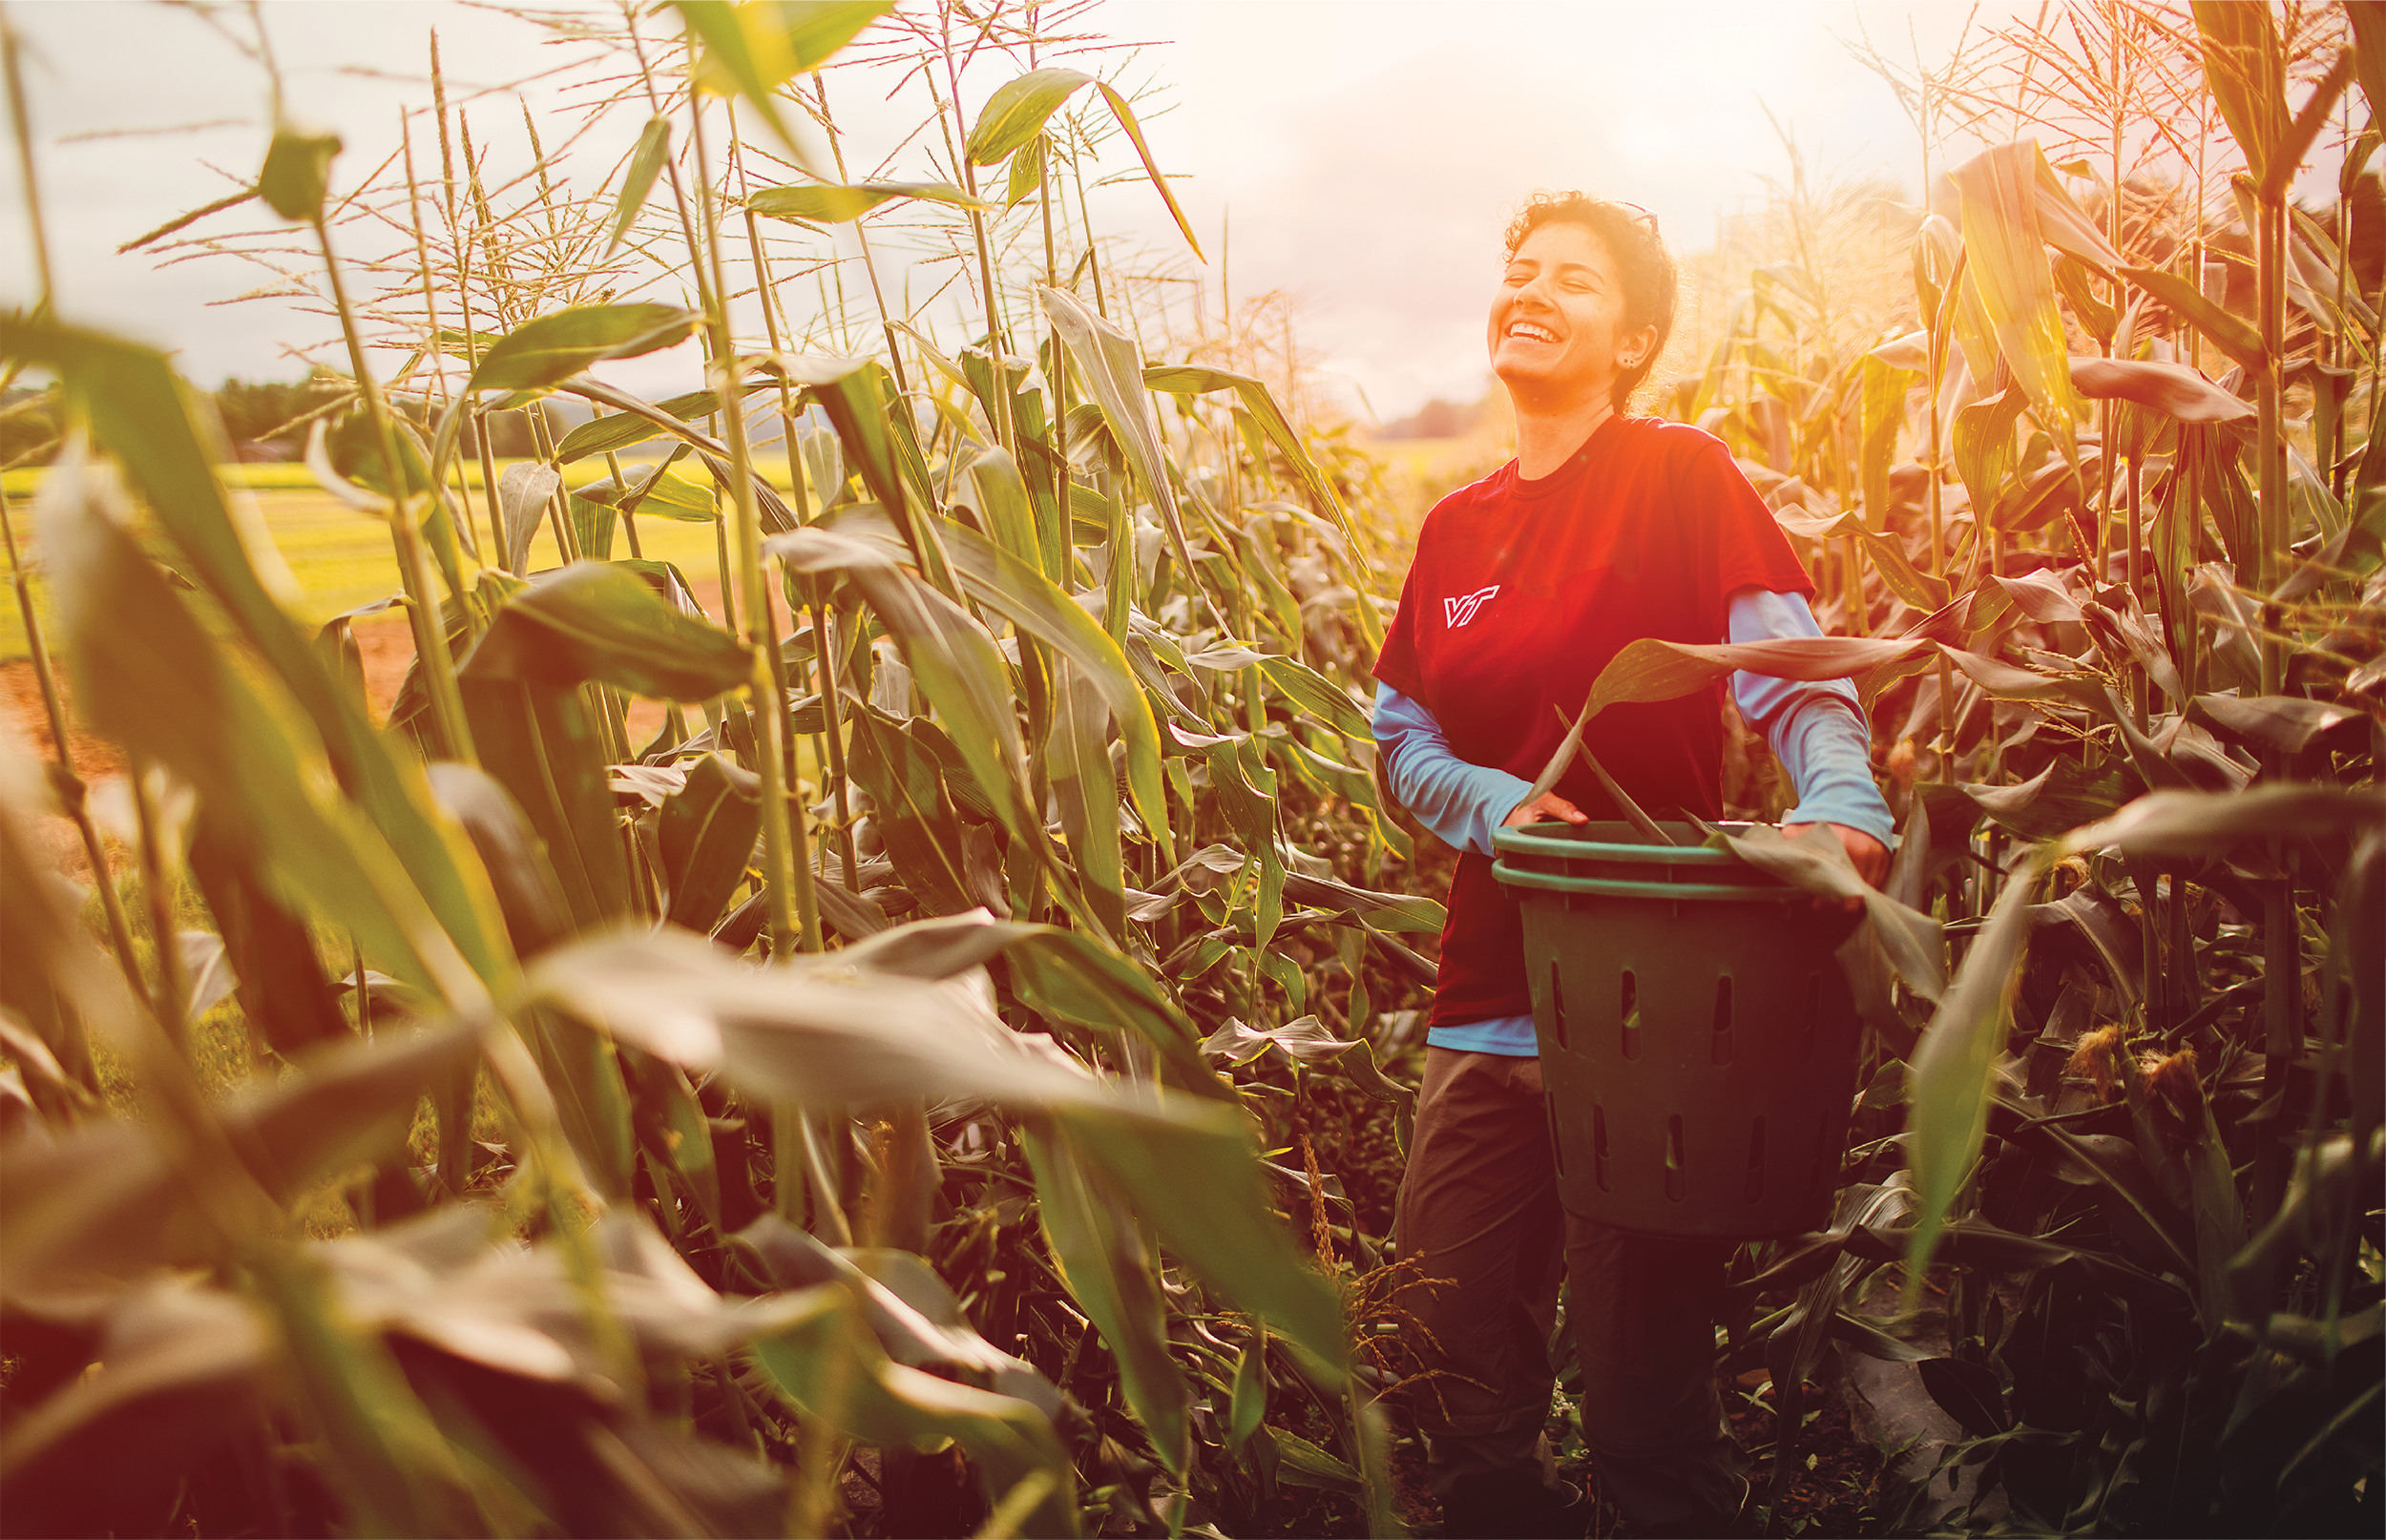 Image of a student carrying a basket in a cornfield